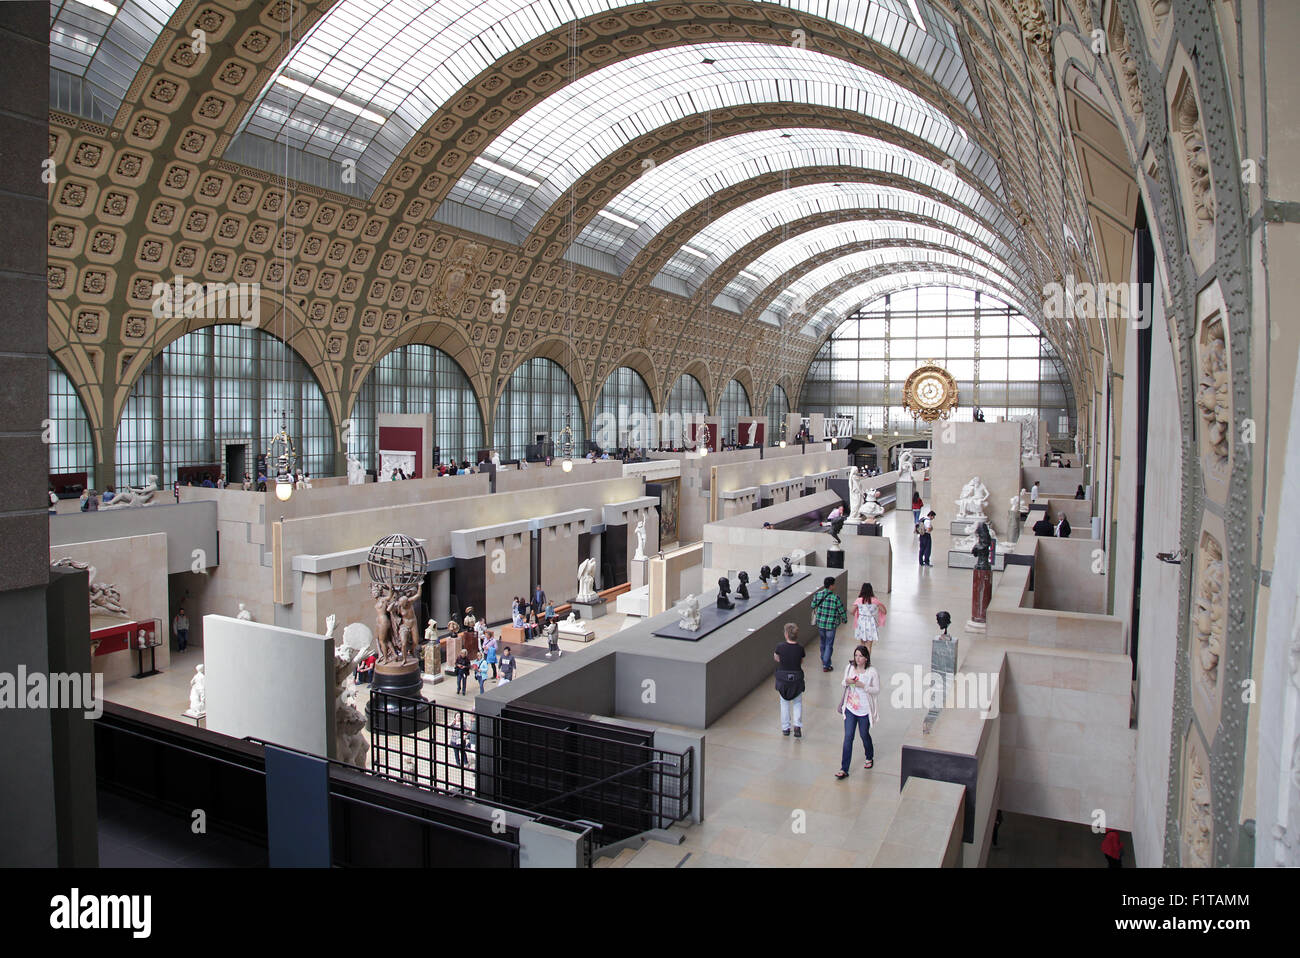 Main Hall of the Musée d'Orsay.Paris.France. - Stock Image